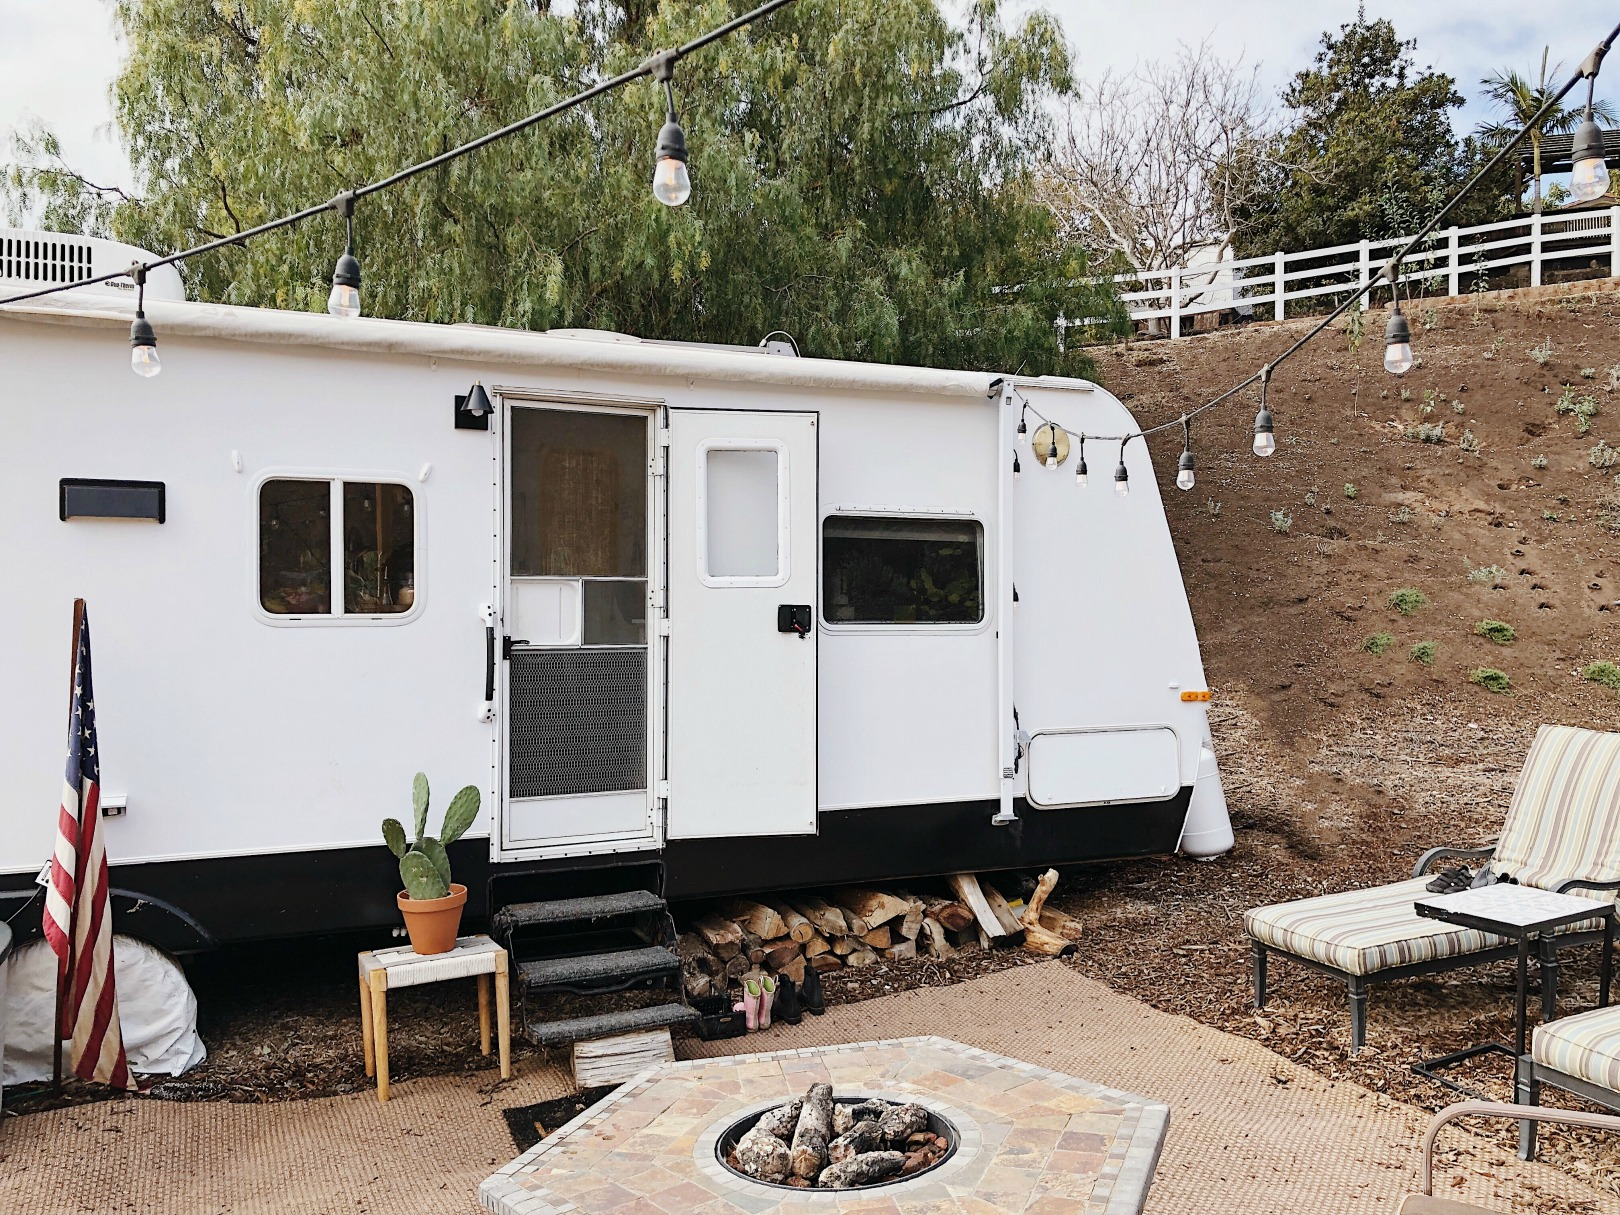 Small Space Living- What living in an RV looks like!